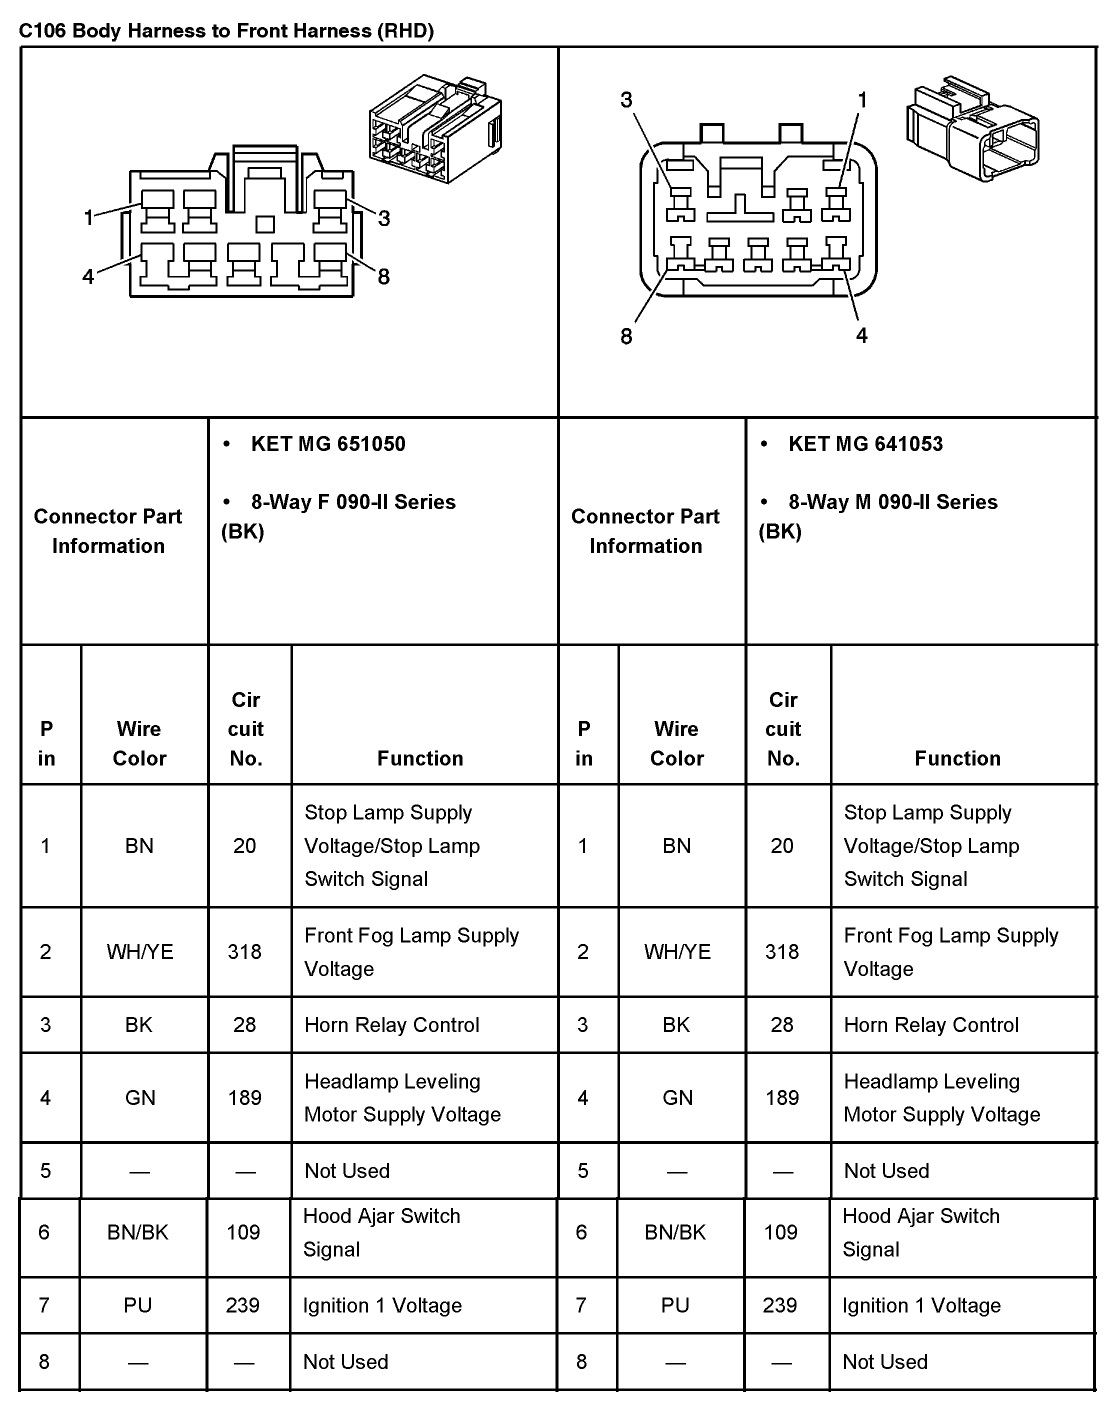 2005 aveo master connector list and diagrams rh aveoforum com 2009 chevy aveo wiring harness 2010 chevy aveo wiring harness